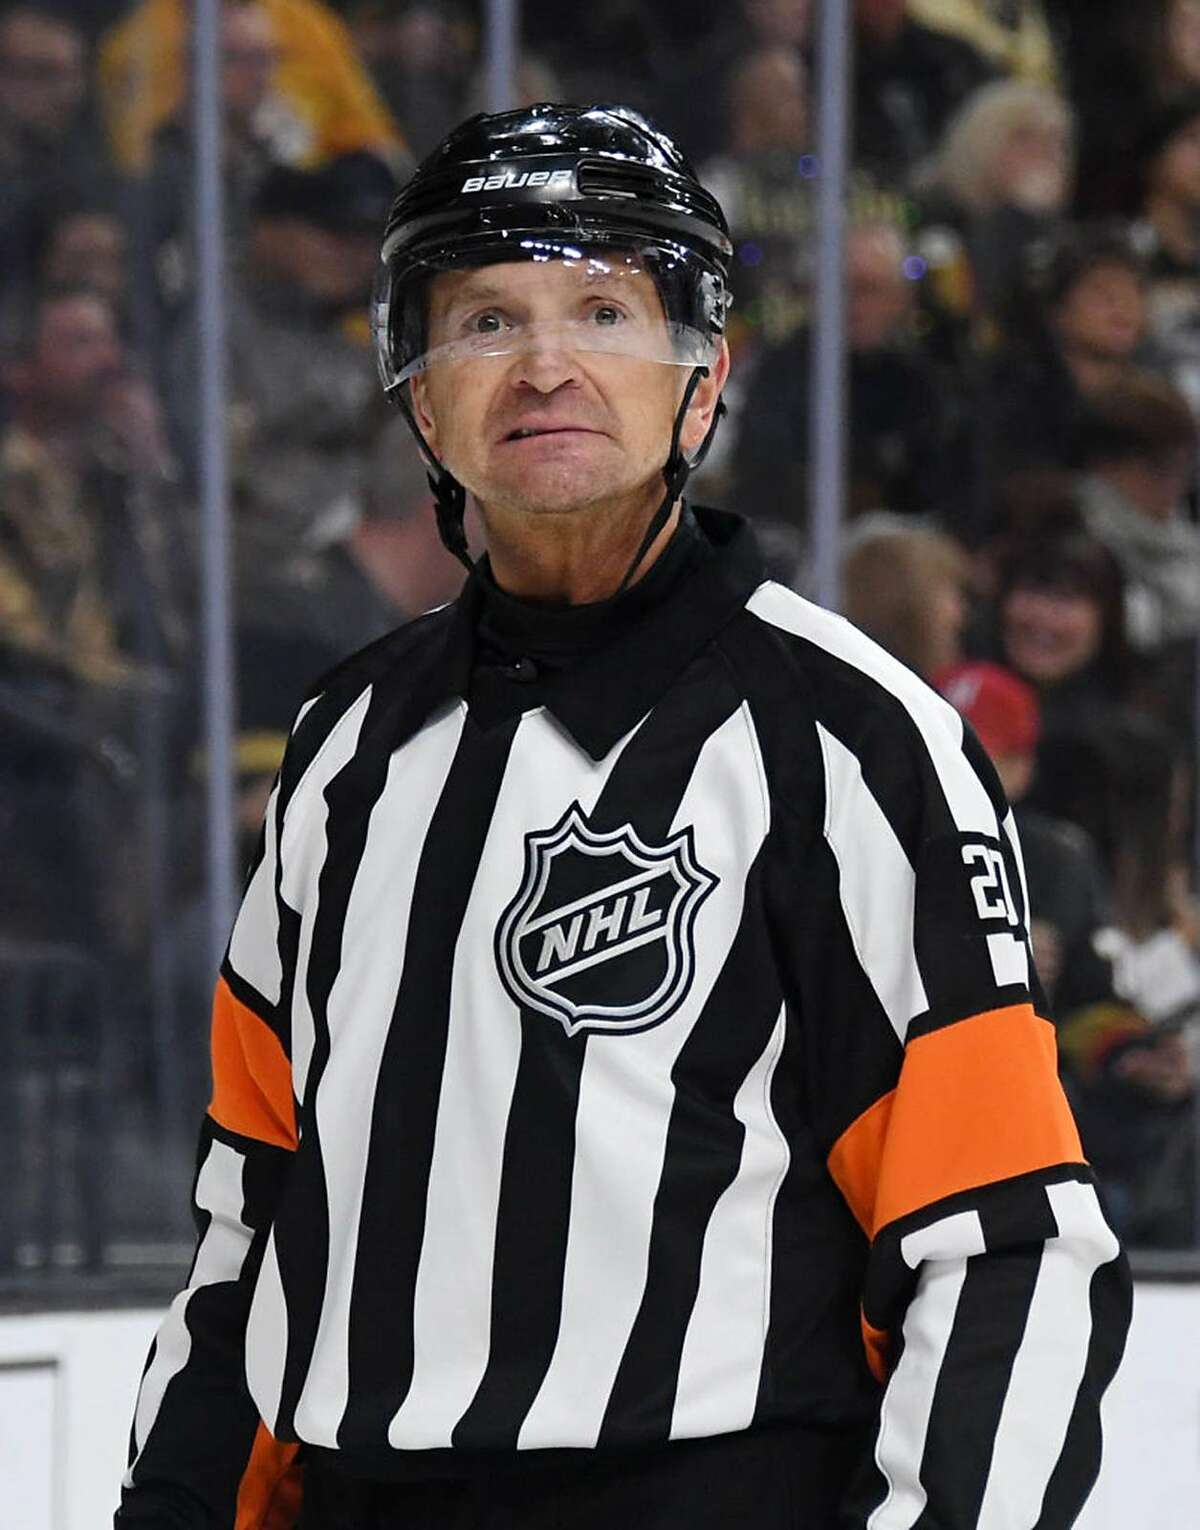 Referee Tim Peel skates during a break in the second period of a game between the Nashville Predators and the Vegas Golden Knights at T-Mobile Arena on February 16, 2019 in Las Vegas, Nevada. The Golden Knights defeated the Predators 5-1. (Photo by Ethan Miller/Getty Images/TNS)